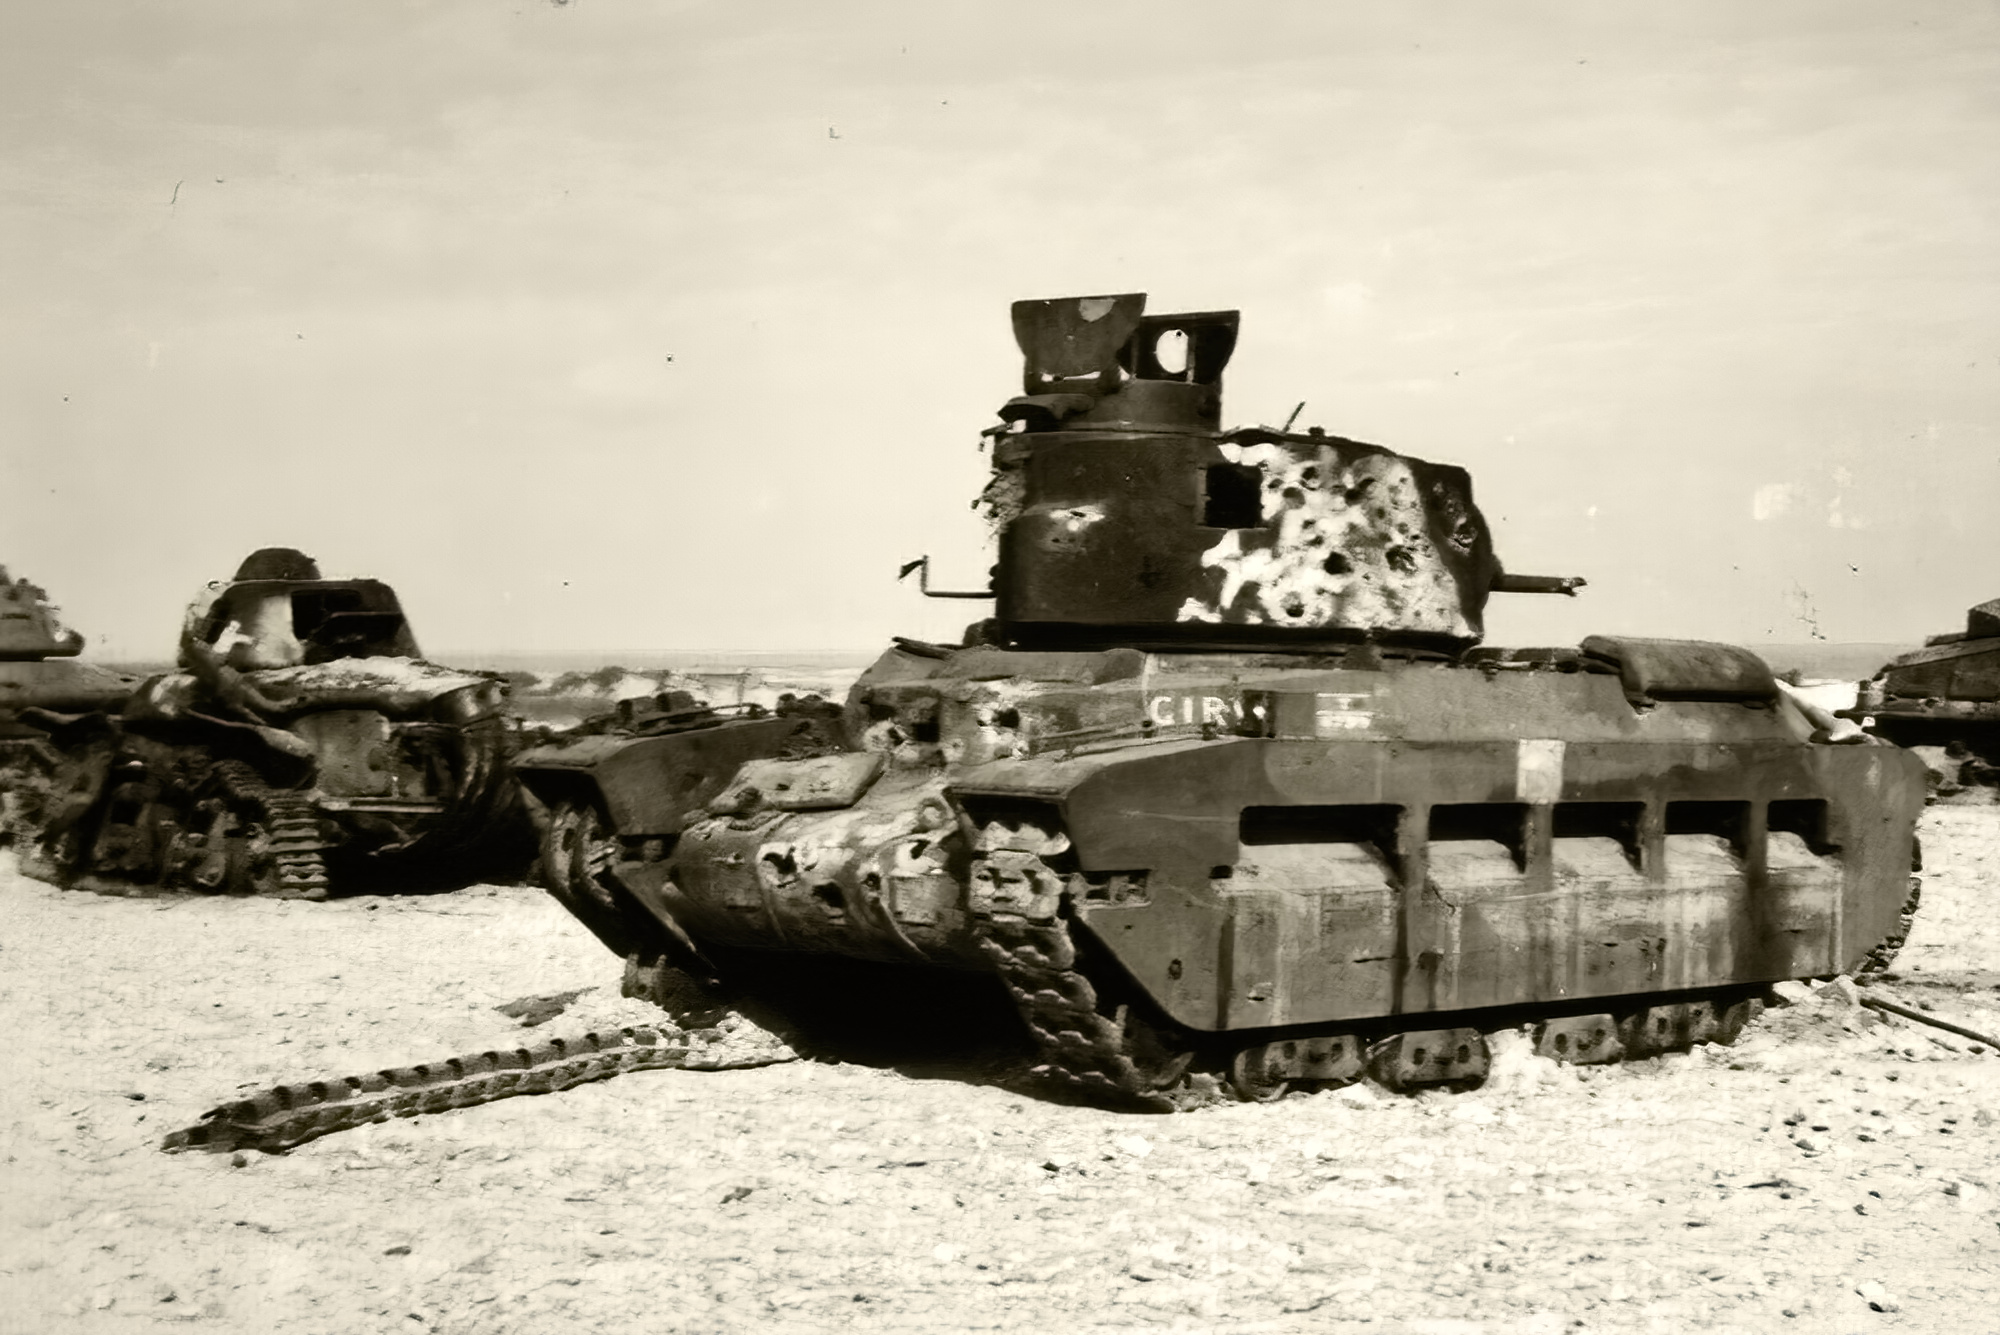 British Matilda abandoned with French Renault R35 during battle of France 1940 ebay 02